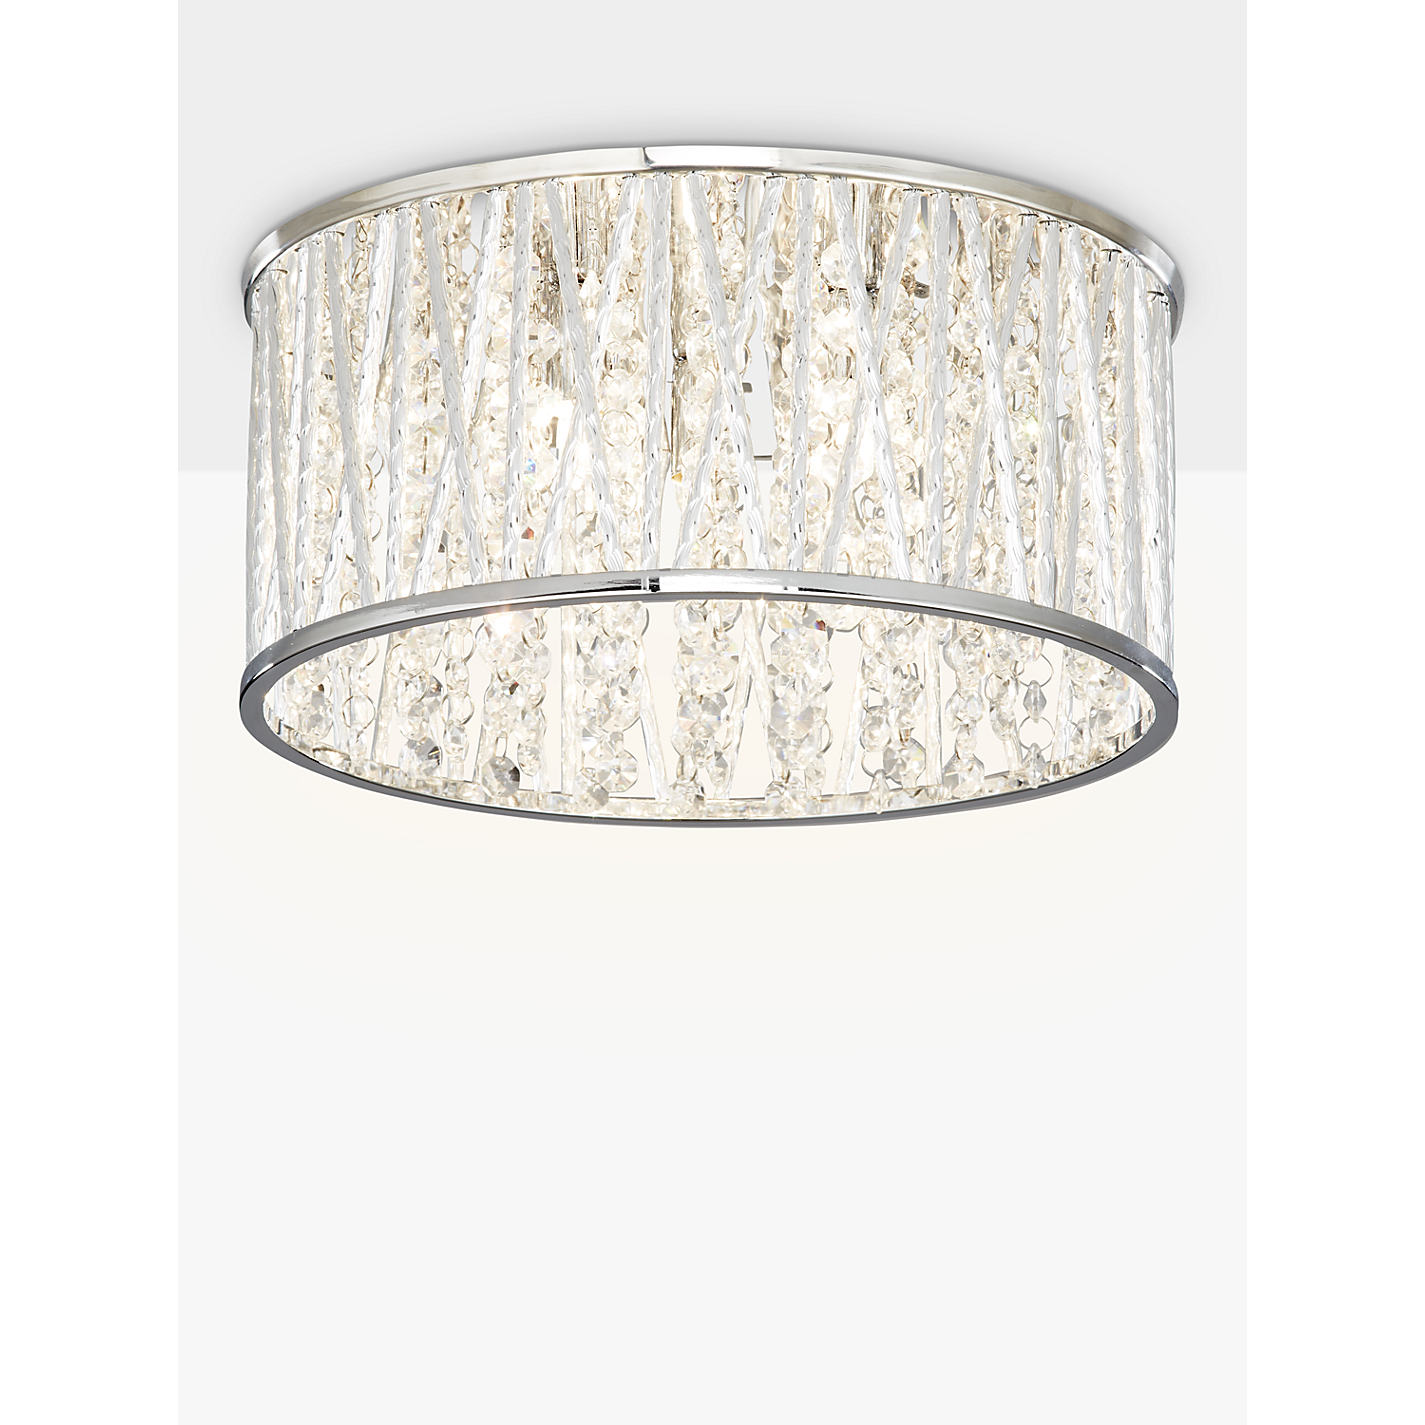 Buy john lewis emilia crystal drum flush ceiling light john lewis buy john lewis emilia crystal drum flush ceiling light online at johnlewis aloadofball